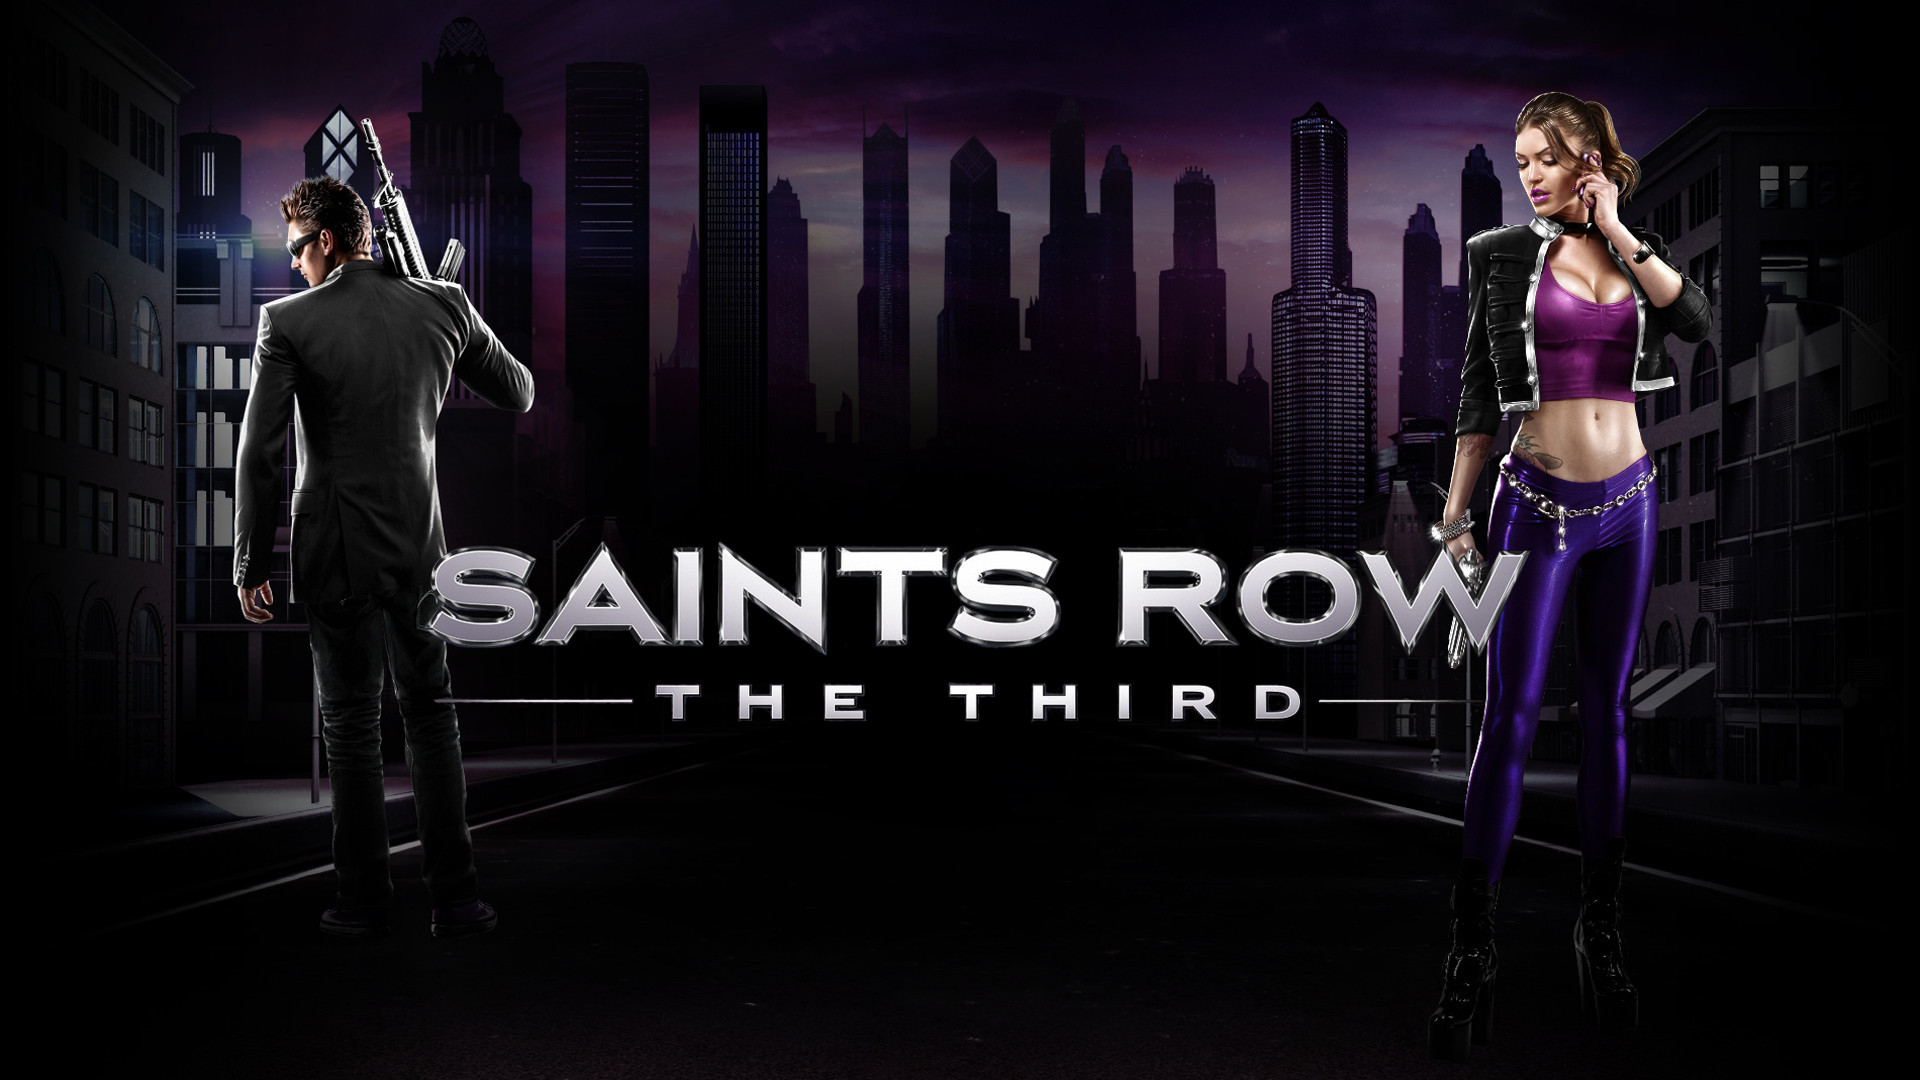 1920x1080 downloado · saints-row-wallpaper-3840x1200-1080p-WTG3094014